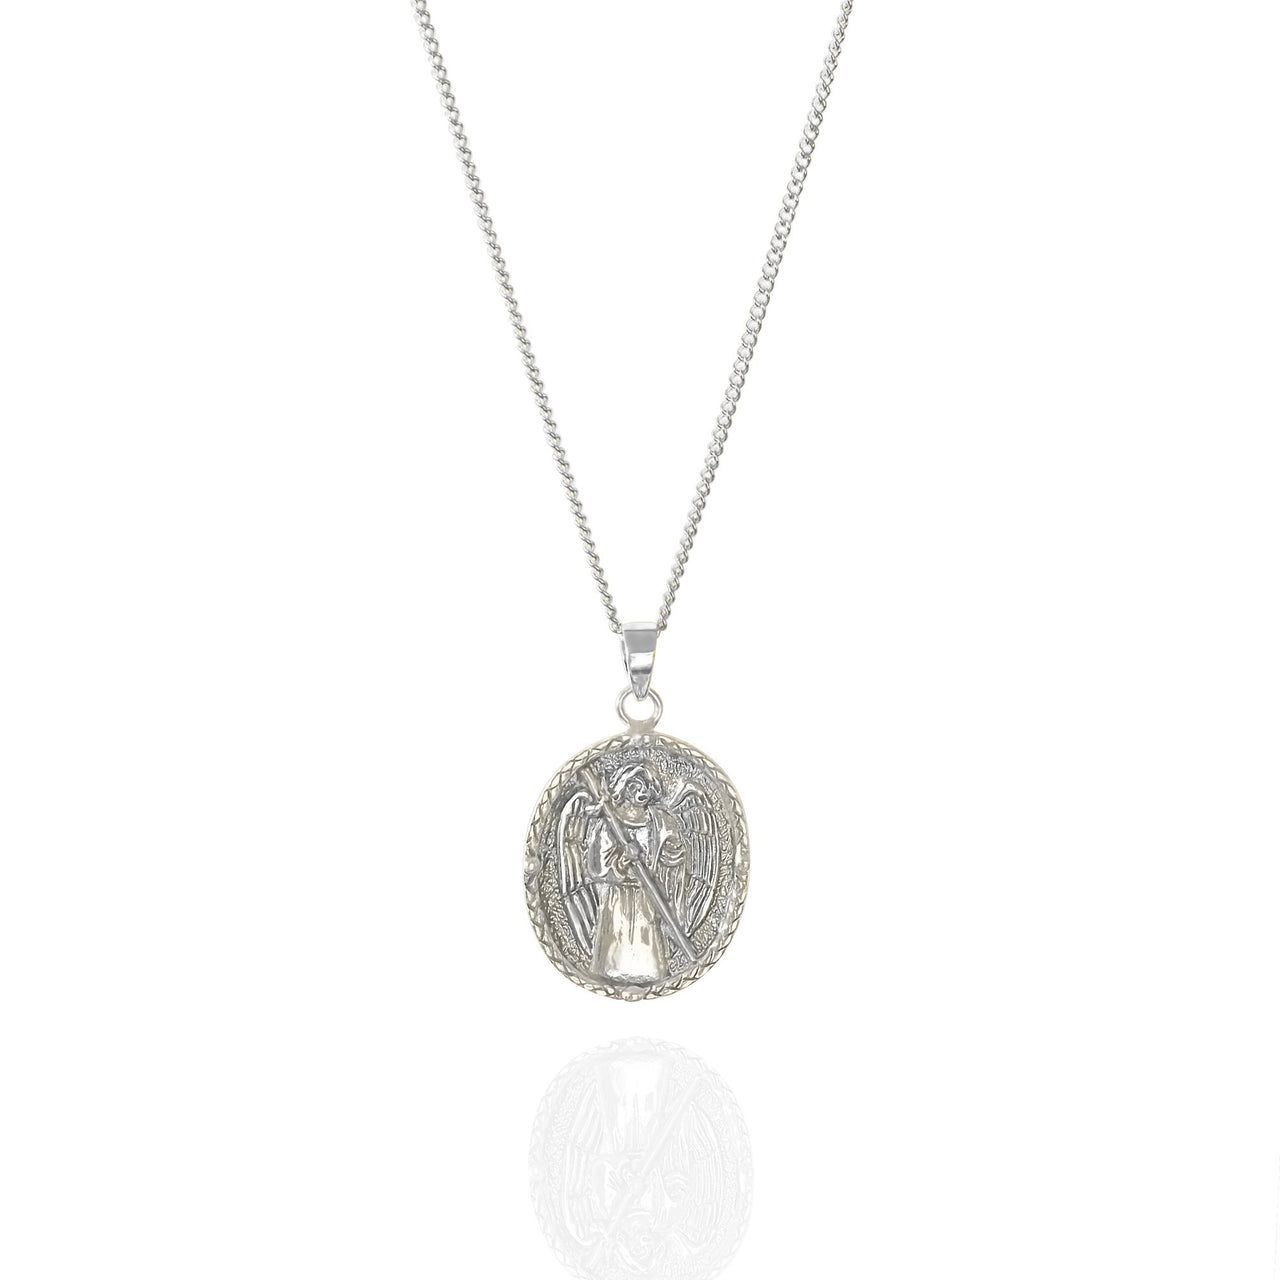 Luna & Rose 'St Raphael' Patron Saint of Healers, Happy Meetings, Doctors & Nurses - Silver